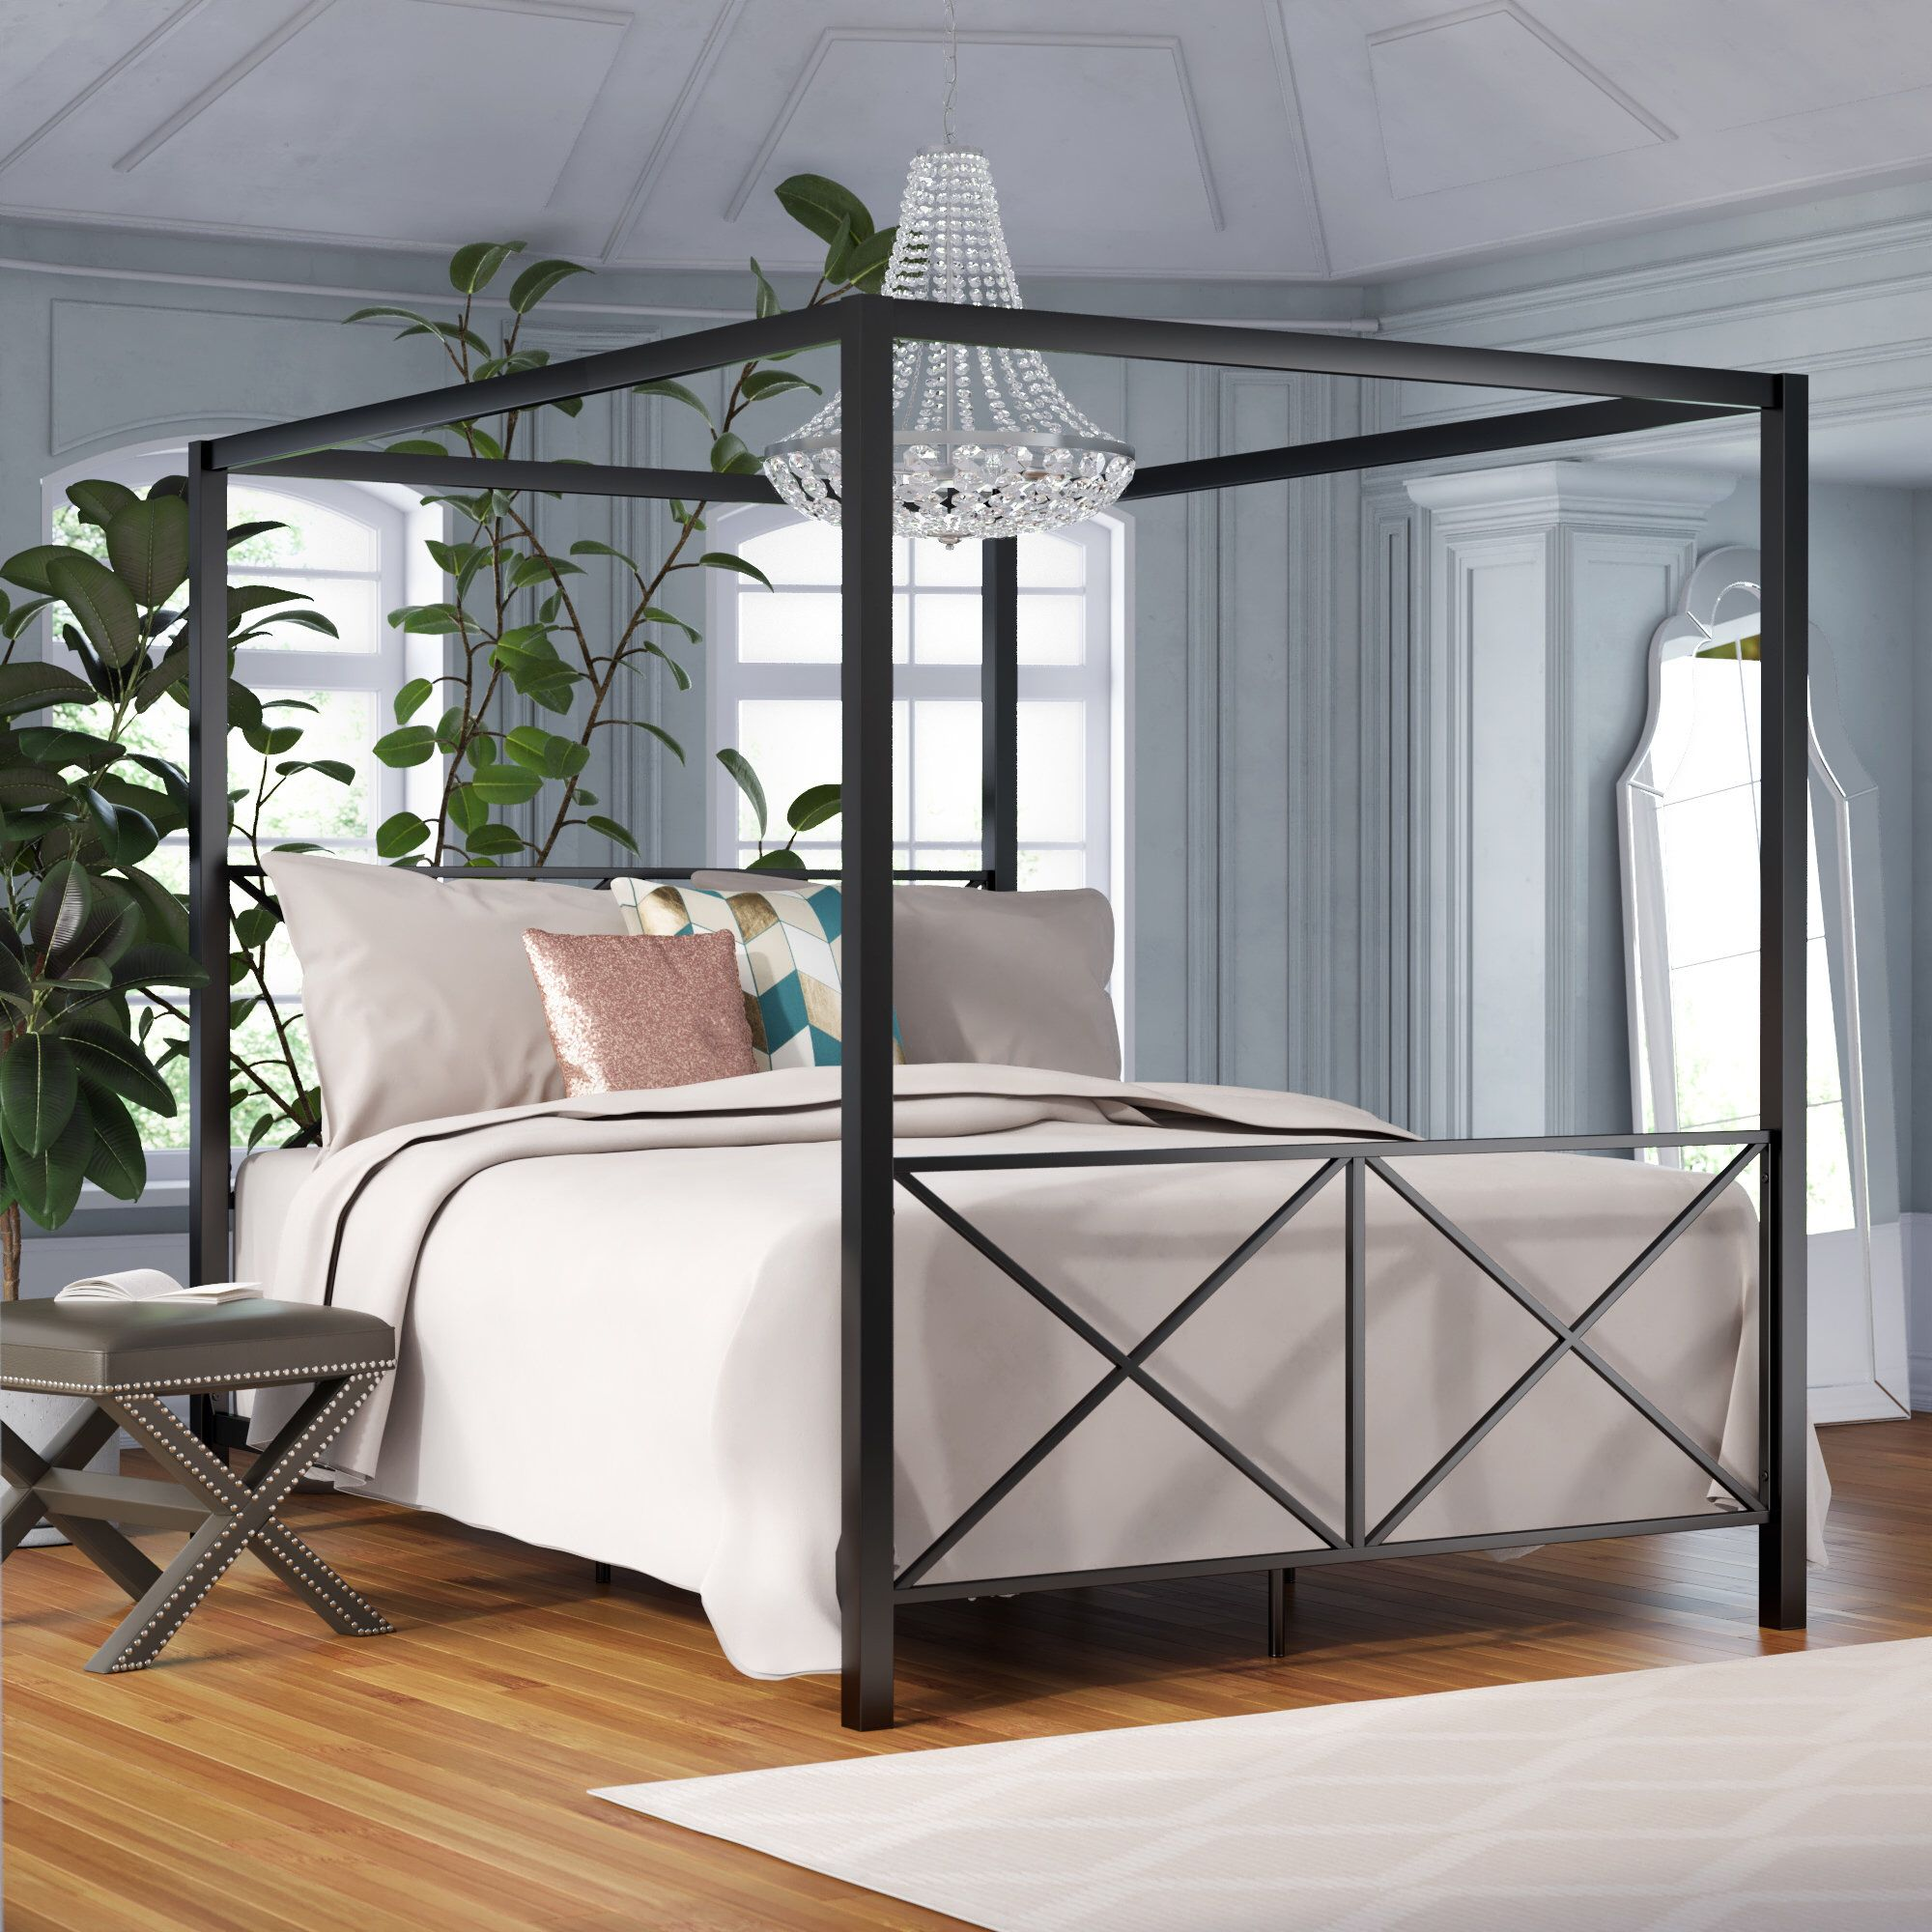 Gilma Canopy Bed Canopy bed frame, Queen canopy bed